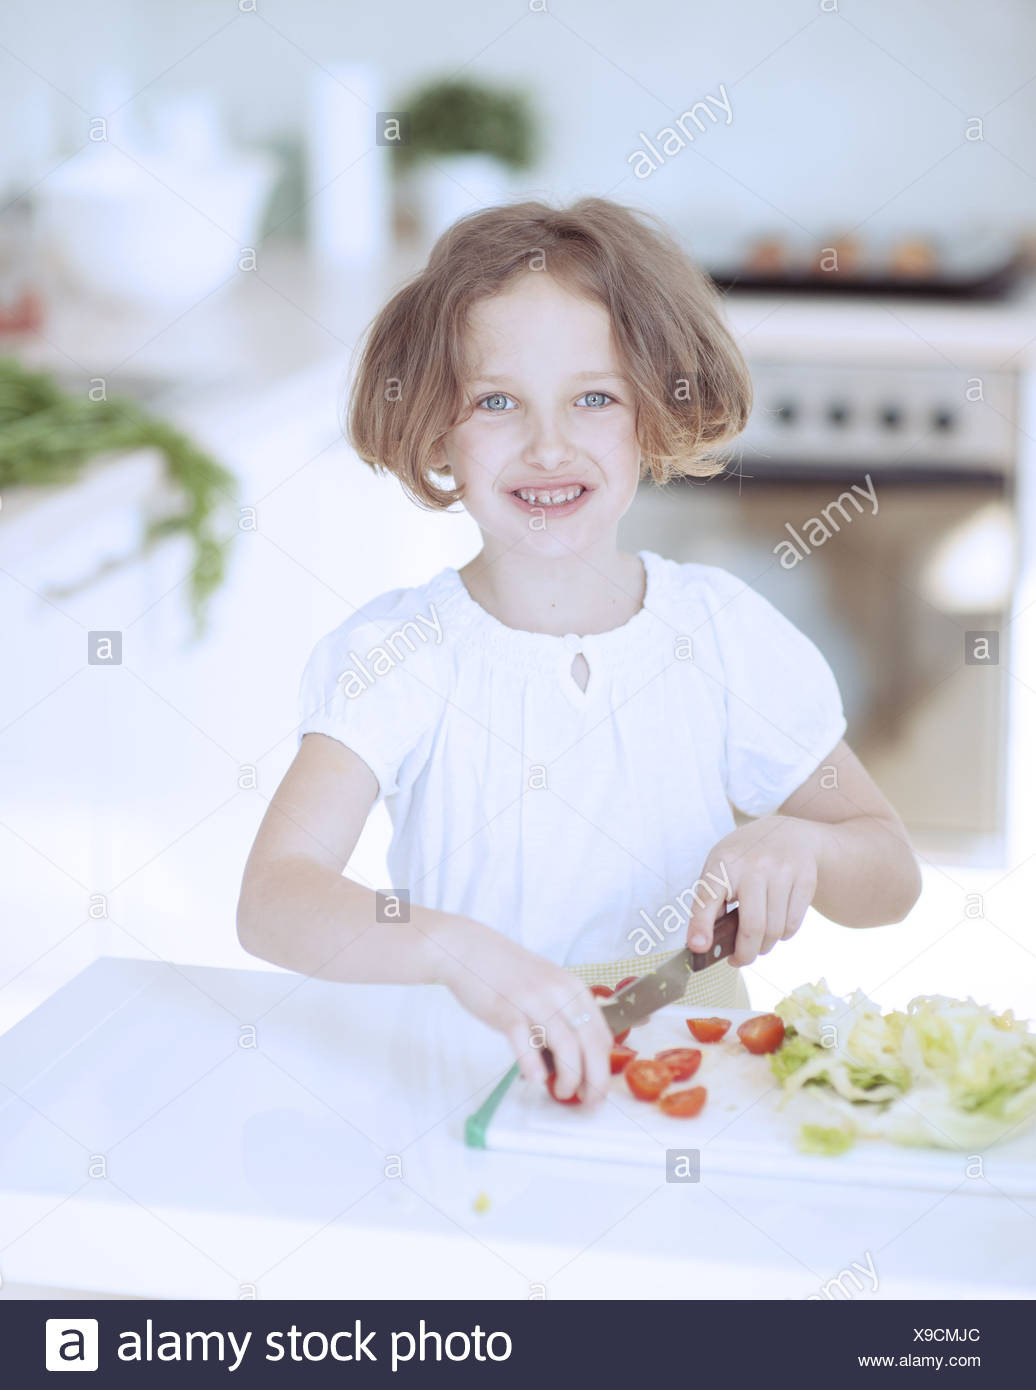 Young girl chopping tomatoes and making a salad in the kitchen - Stock Image